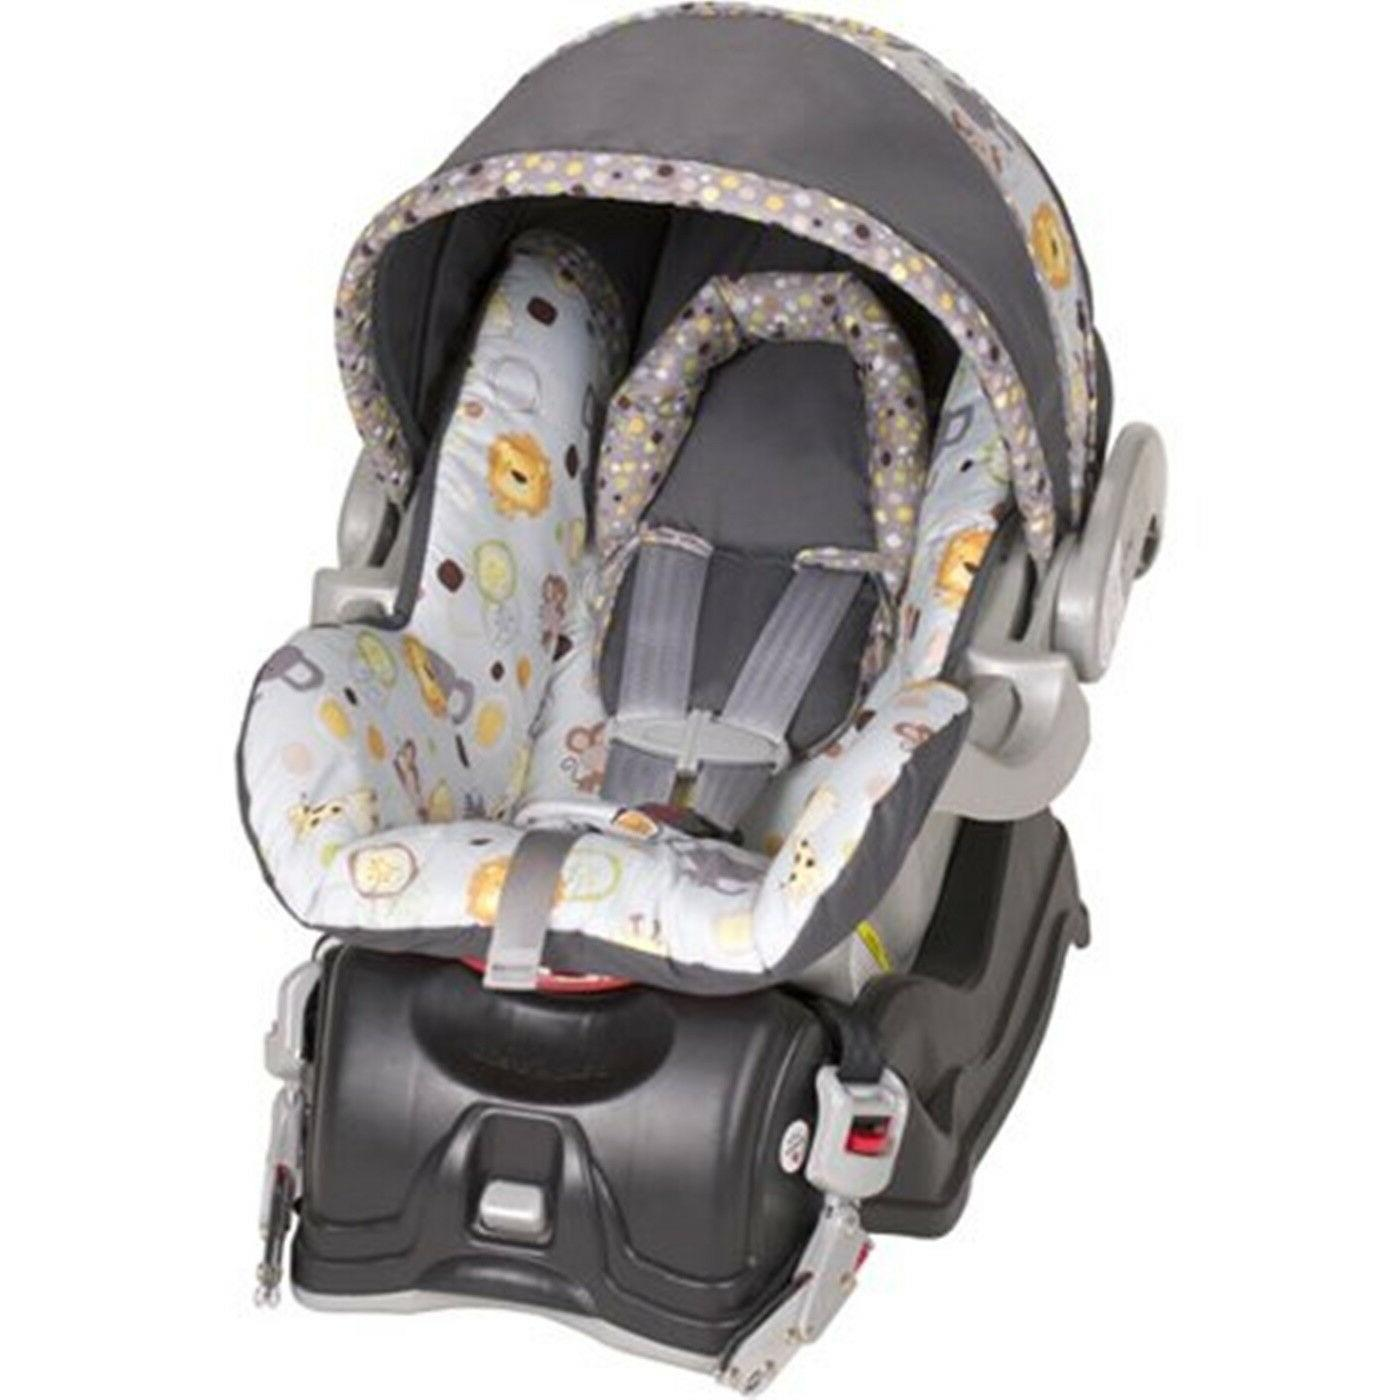 Stroller And Combo Baby Car Bobbleheads Can